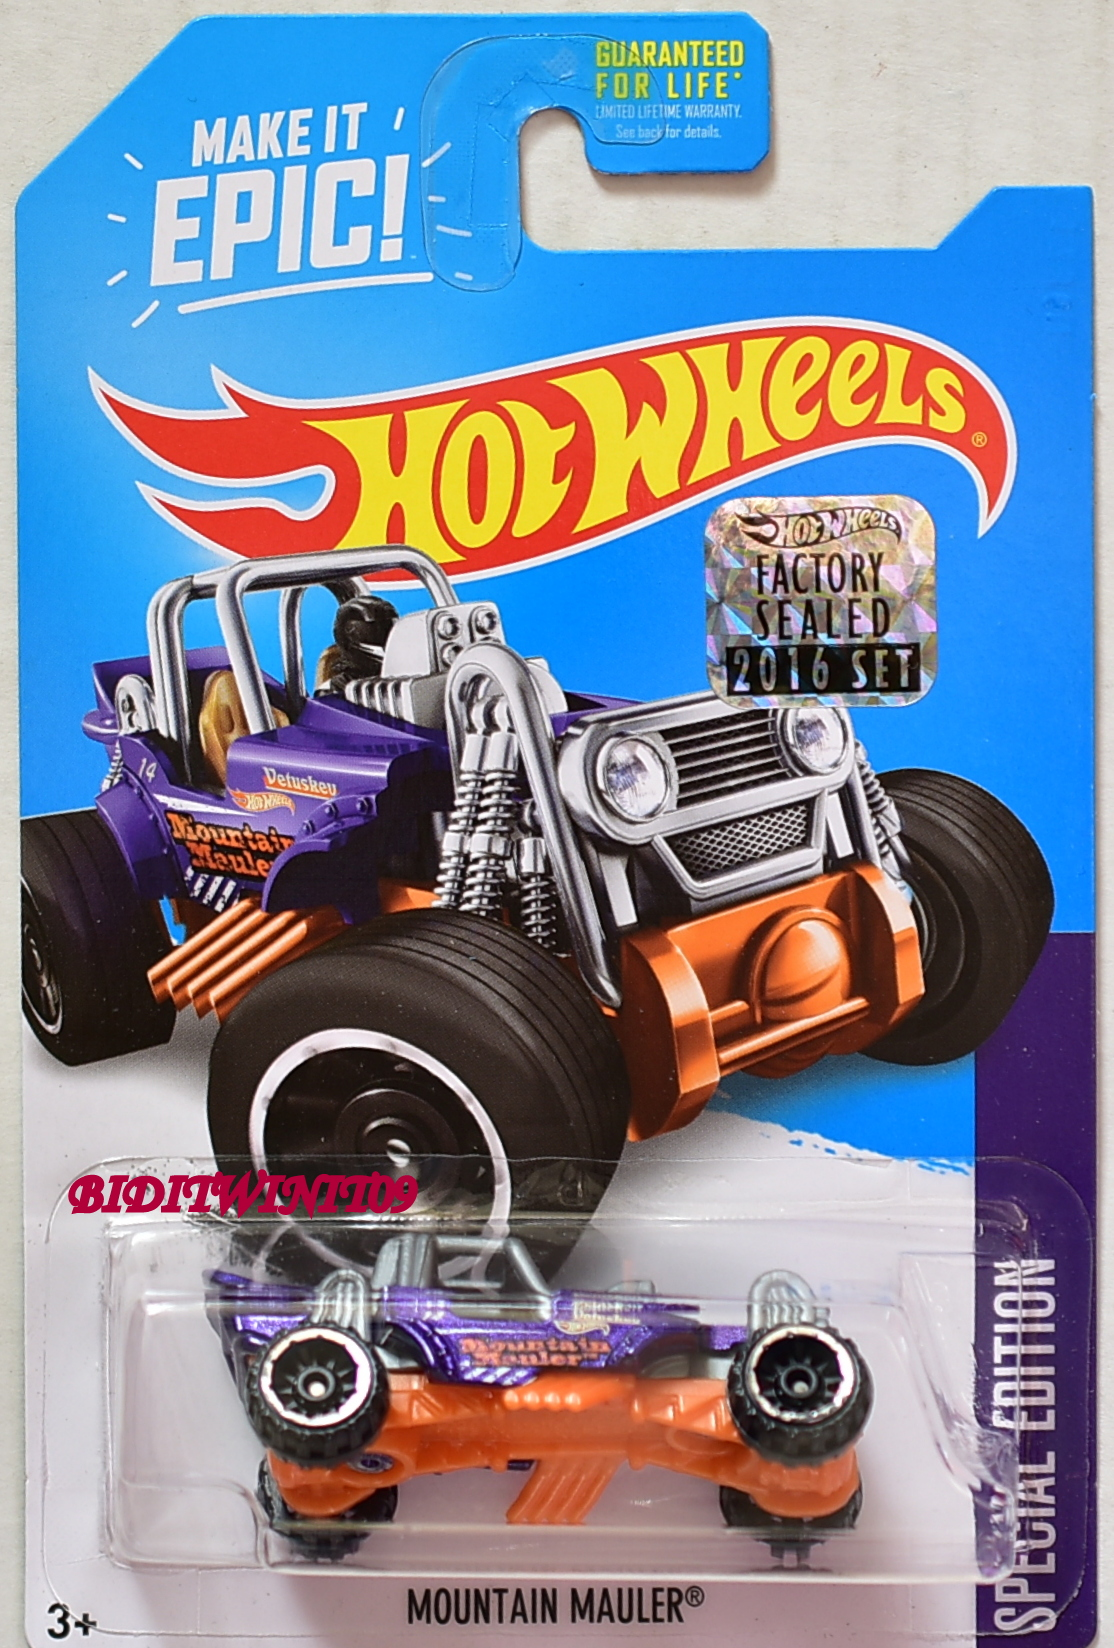 HOT WHEELS 2016 SPECIAL EDITION MOUNTAIN MAULER FACTORY SEALED